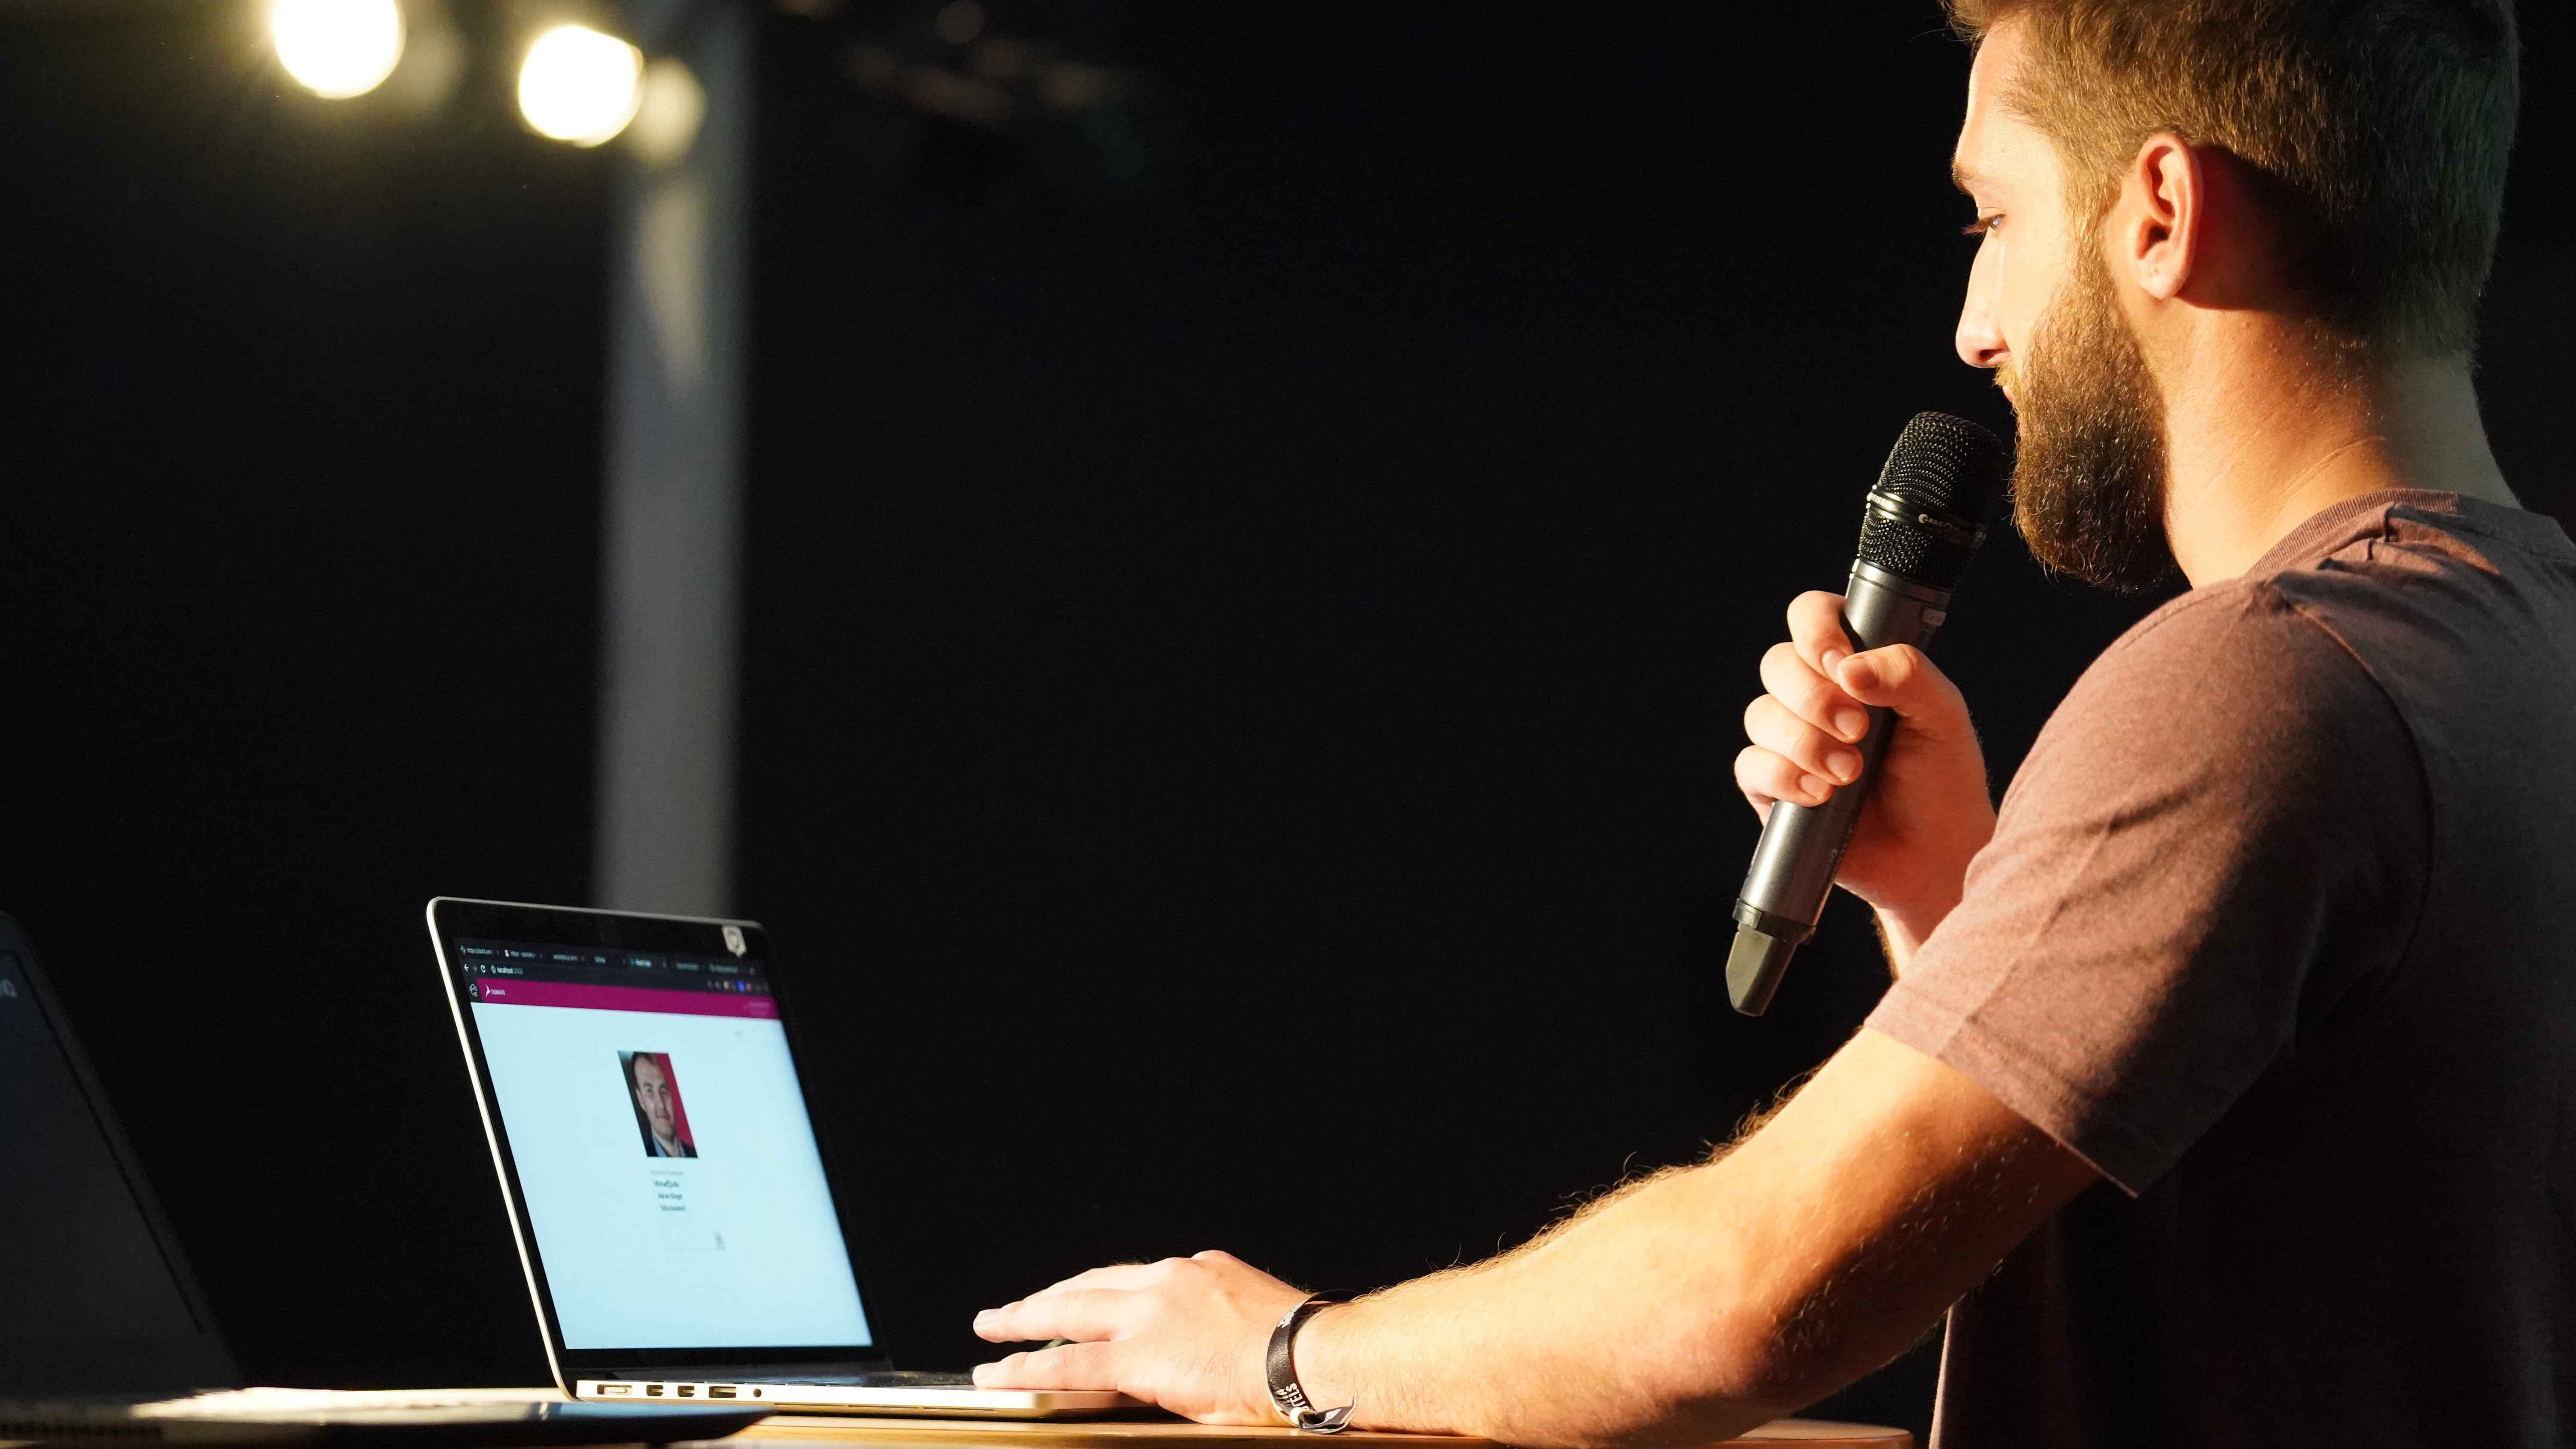 Code Camp 2019 - man presenting at podium with microphone